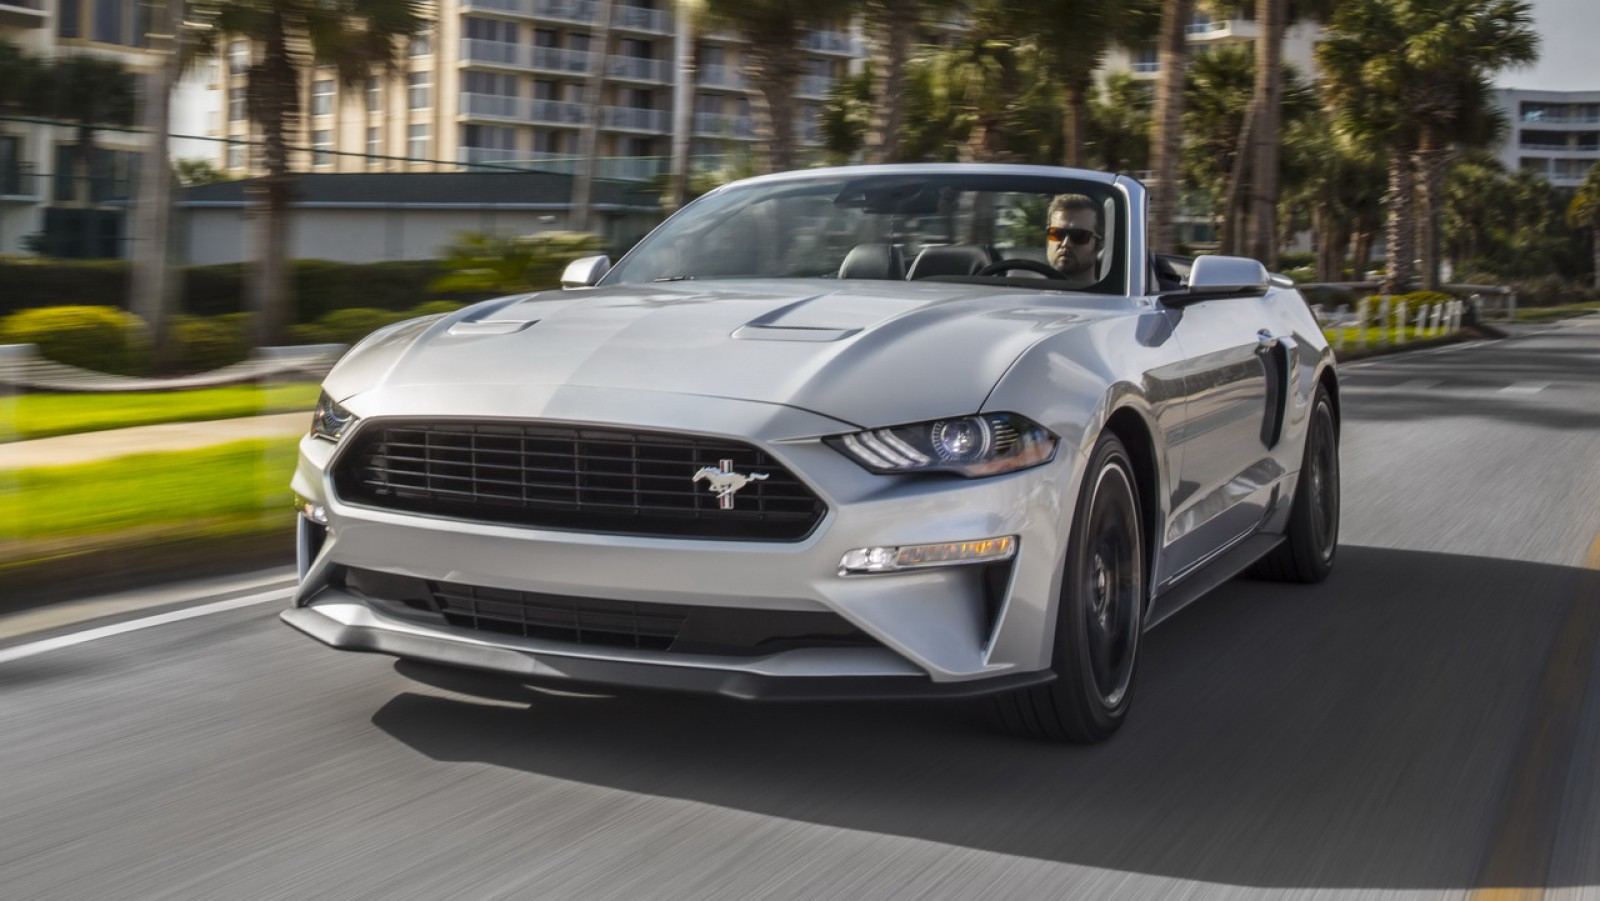 Ford has prepared a new and limited edition mustang gt shortly after presenting the bullitt edition